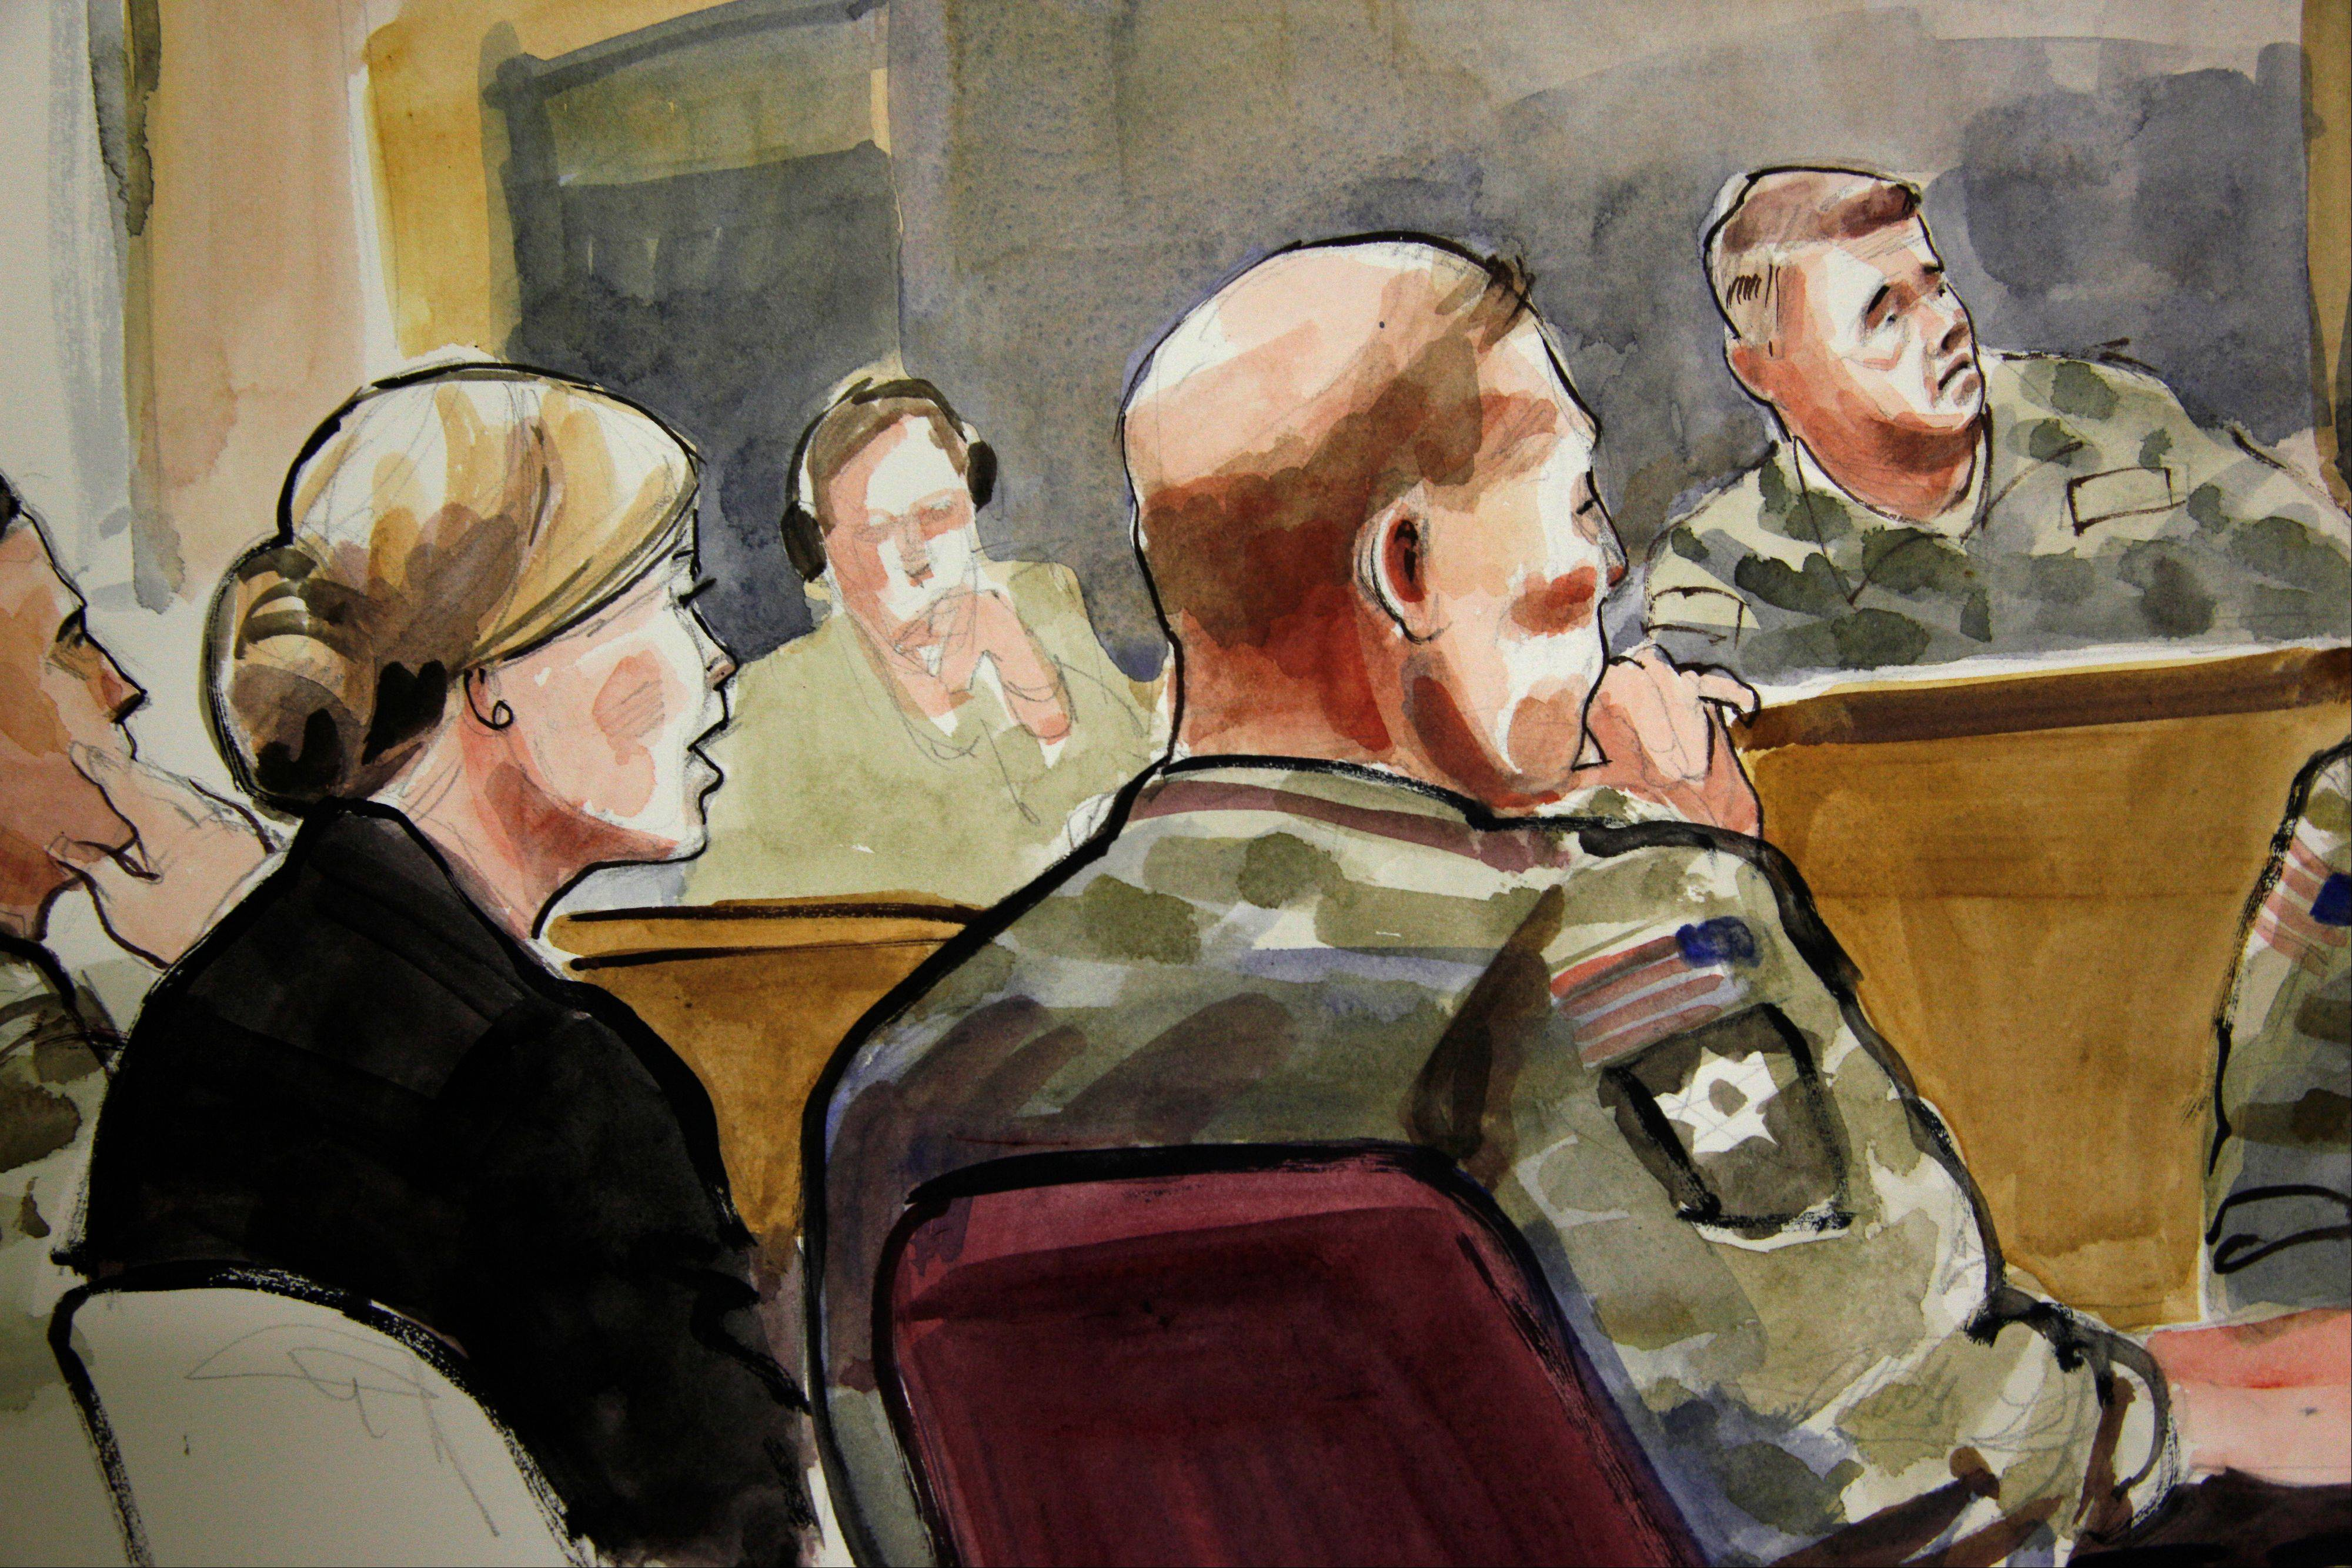 In this detail of a courtroom sketch, U.S. Army Staff Sgt. Robert Bales, seated at front-right, listens Monday, Nov. 5, 2012, during a preliminary hearing in a military courtroom at Joint Base Lewis McChord in Washington state. Bales is accused of 16 counts of premeditated murder and six counts of attempted murder for a pre-dawn attack on two villages in Kandahar province in Afghanistan in March, 2012. At upper-right is Investigating Officer Col. Lee Deneke, and seated at front-left is Bales' civilian attorney, Emma Scanlan.